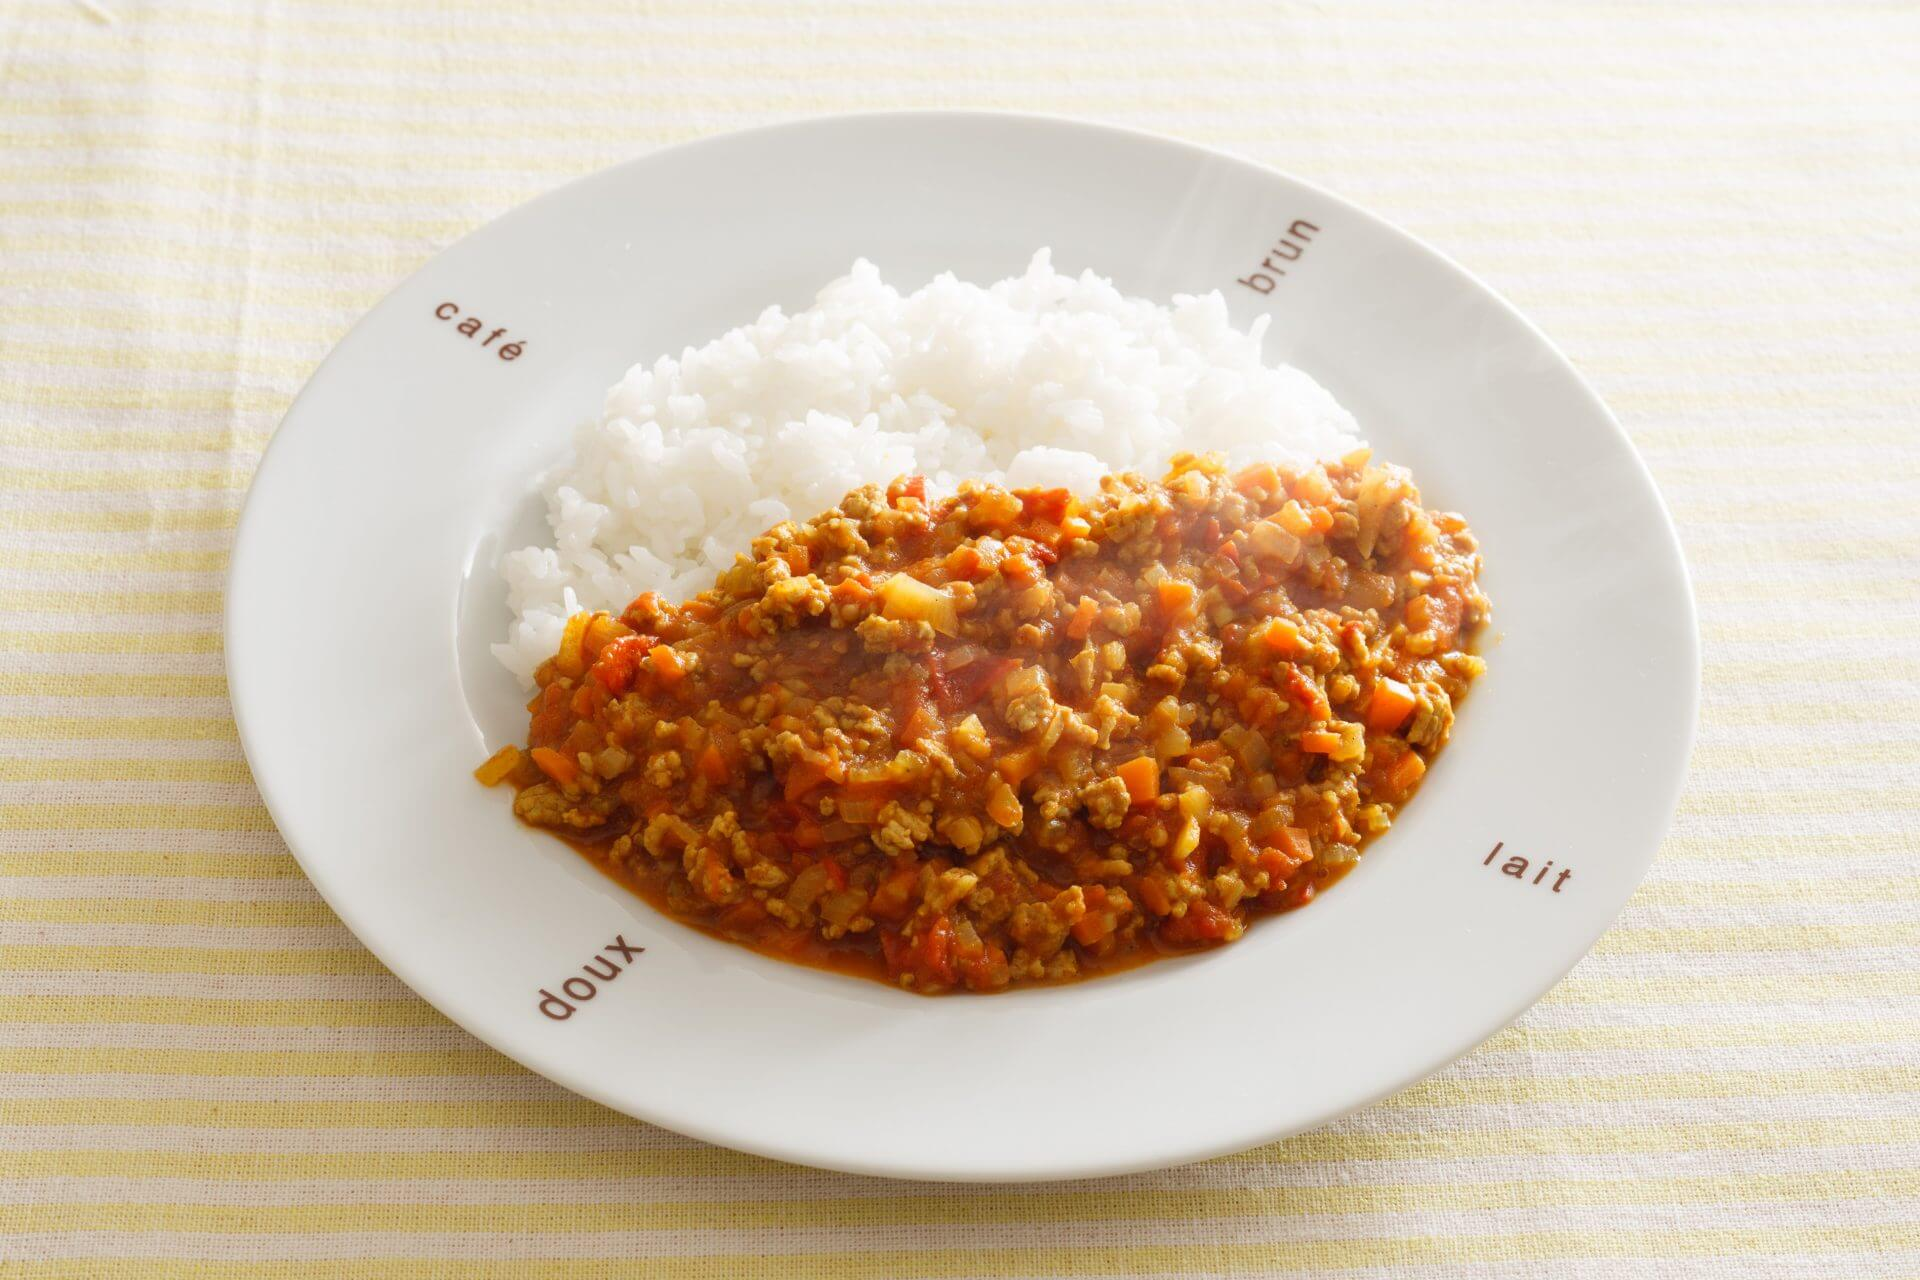 Umami-rich Japanese Dry Curry and Rice